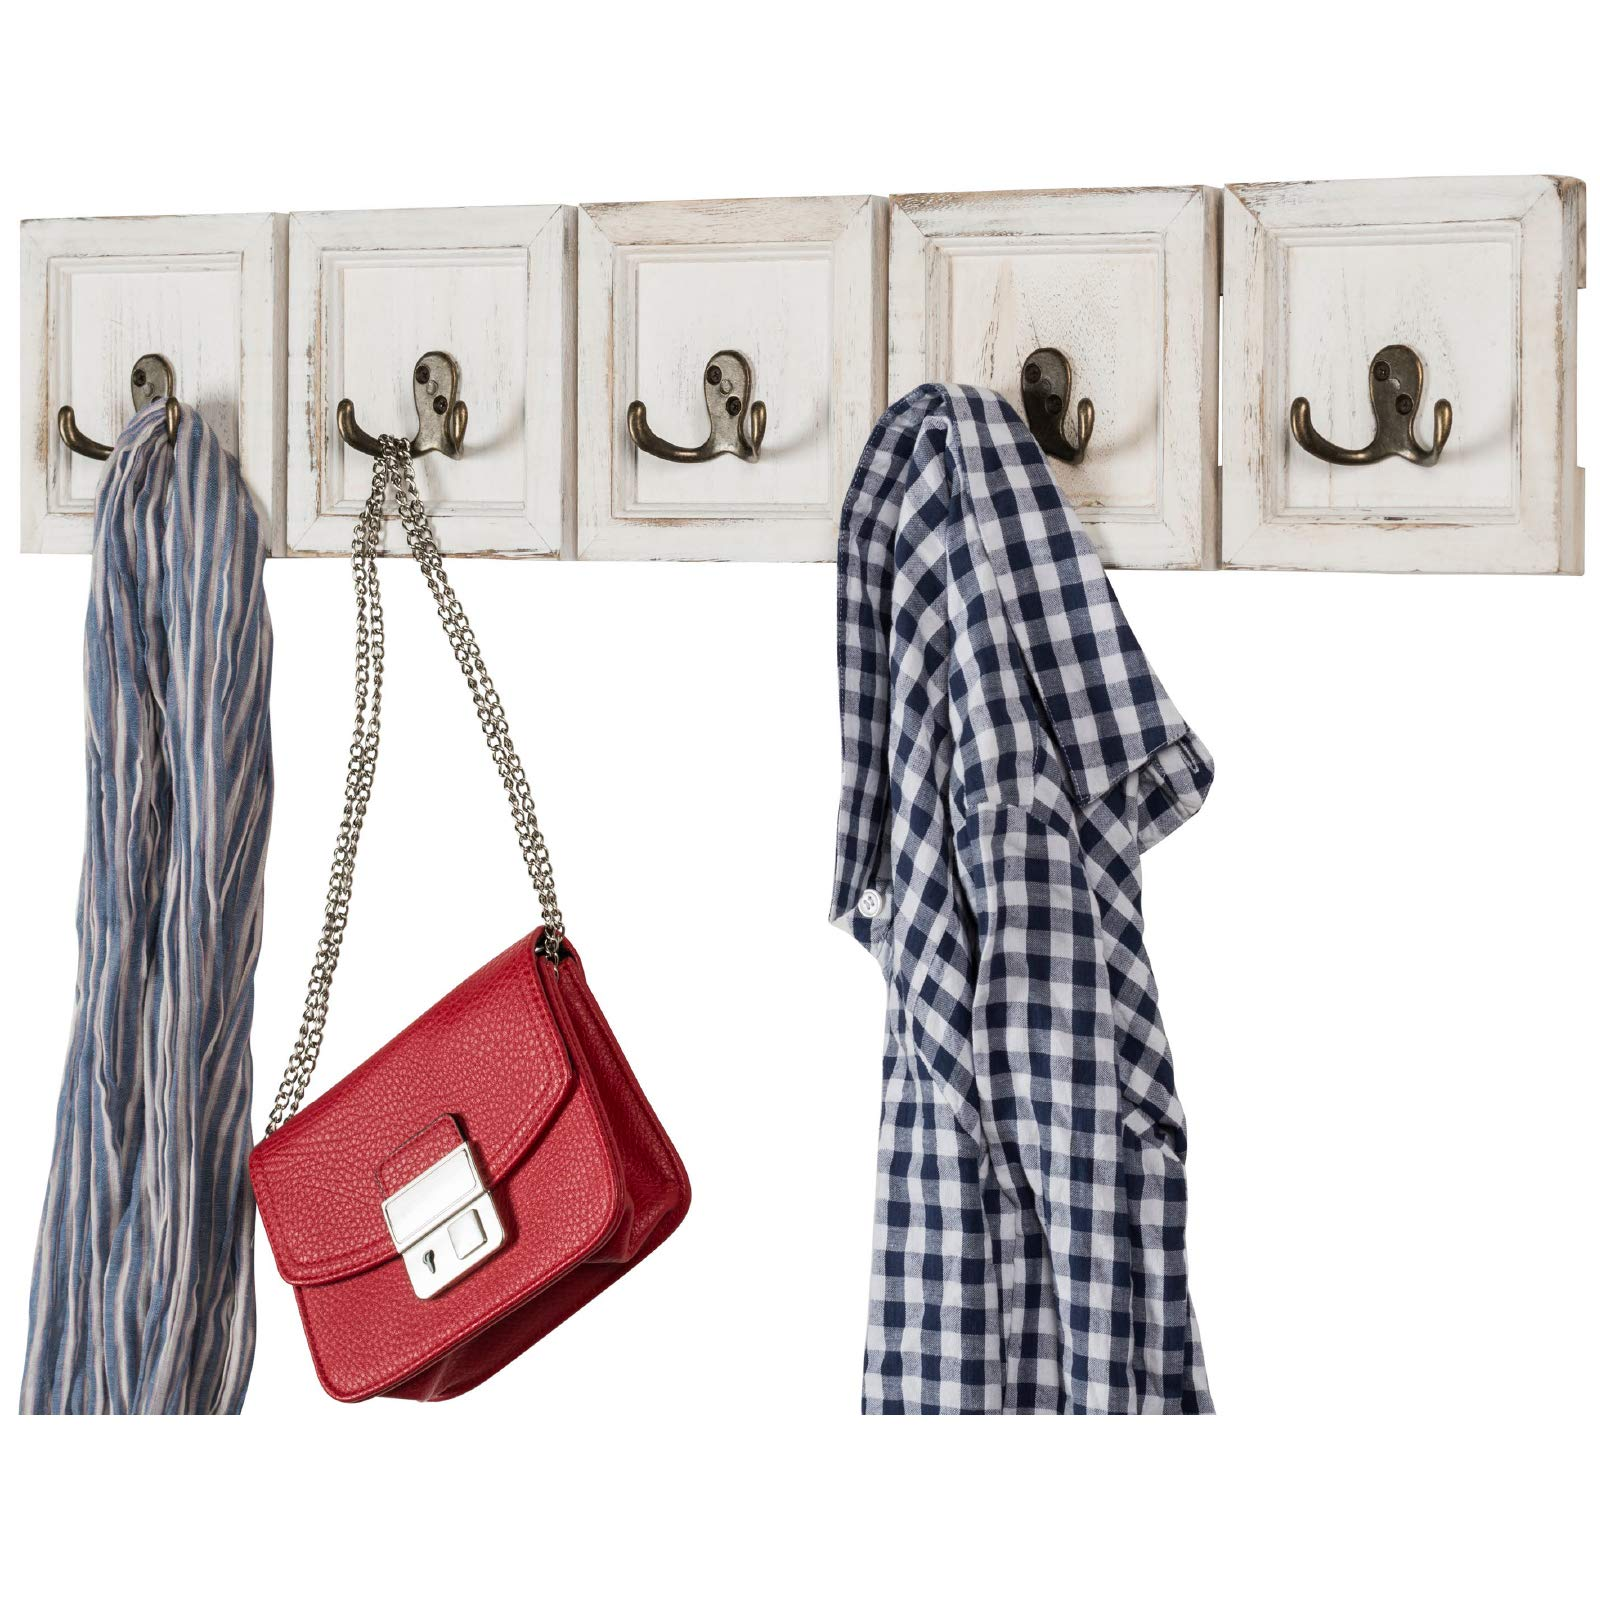 Rustic Wall Mounted Coat Rack with 5 Double Hanging Hooks. Overall Size is 30.5''x6''. Use as Coat Rack, hat Organizer, Key Holder. Perfect for Entryway, Mudroom, Kitchen, Bathroom, Hallway, Foyer by Excello Global Products